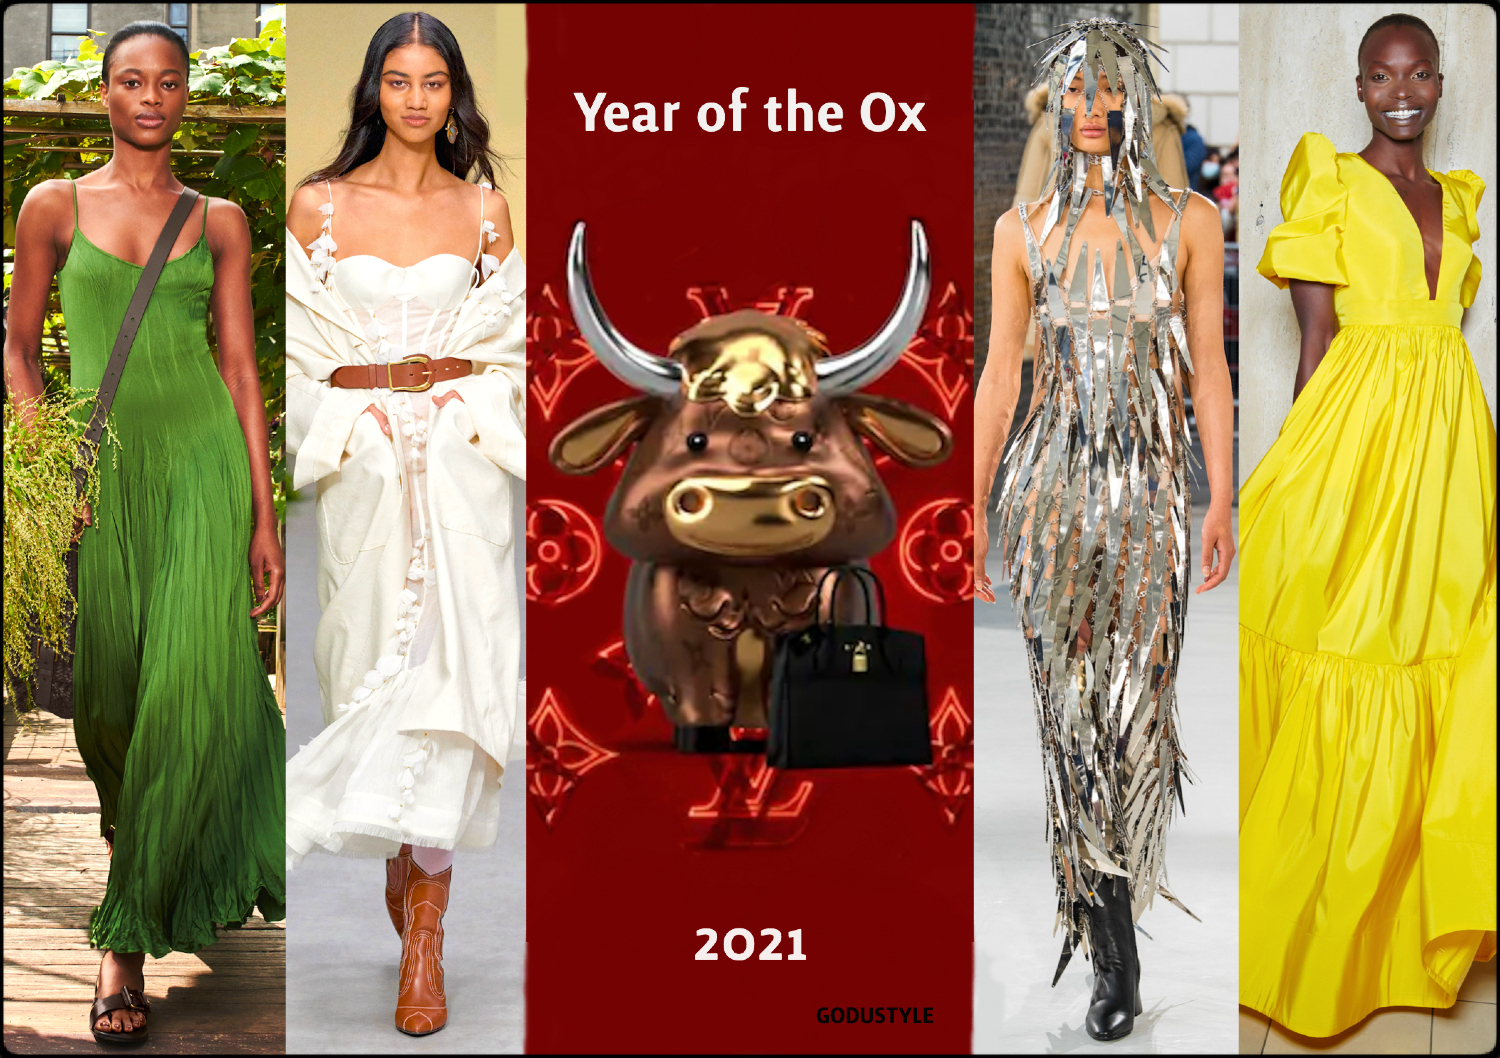 fashion-chinese-new-year-2021-ox-shopping-best-capsule-collections-look-style-details-moda-godustyle